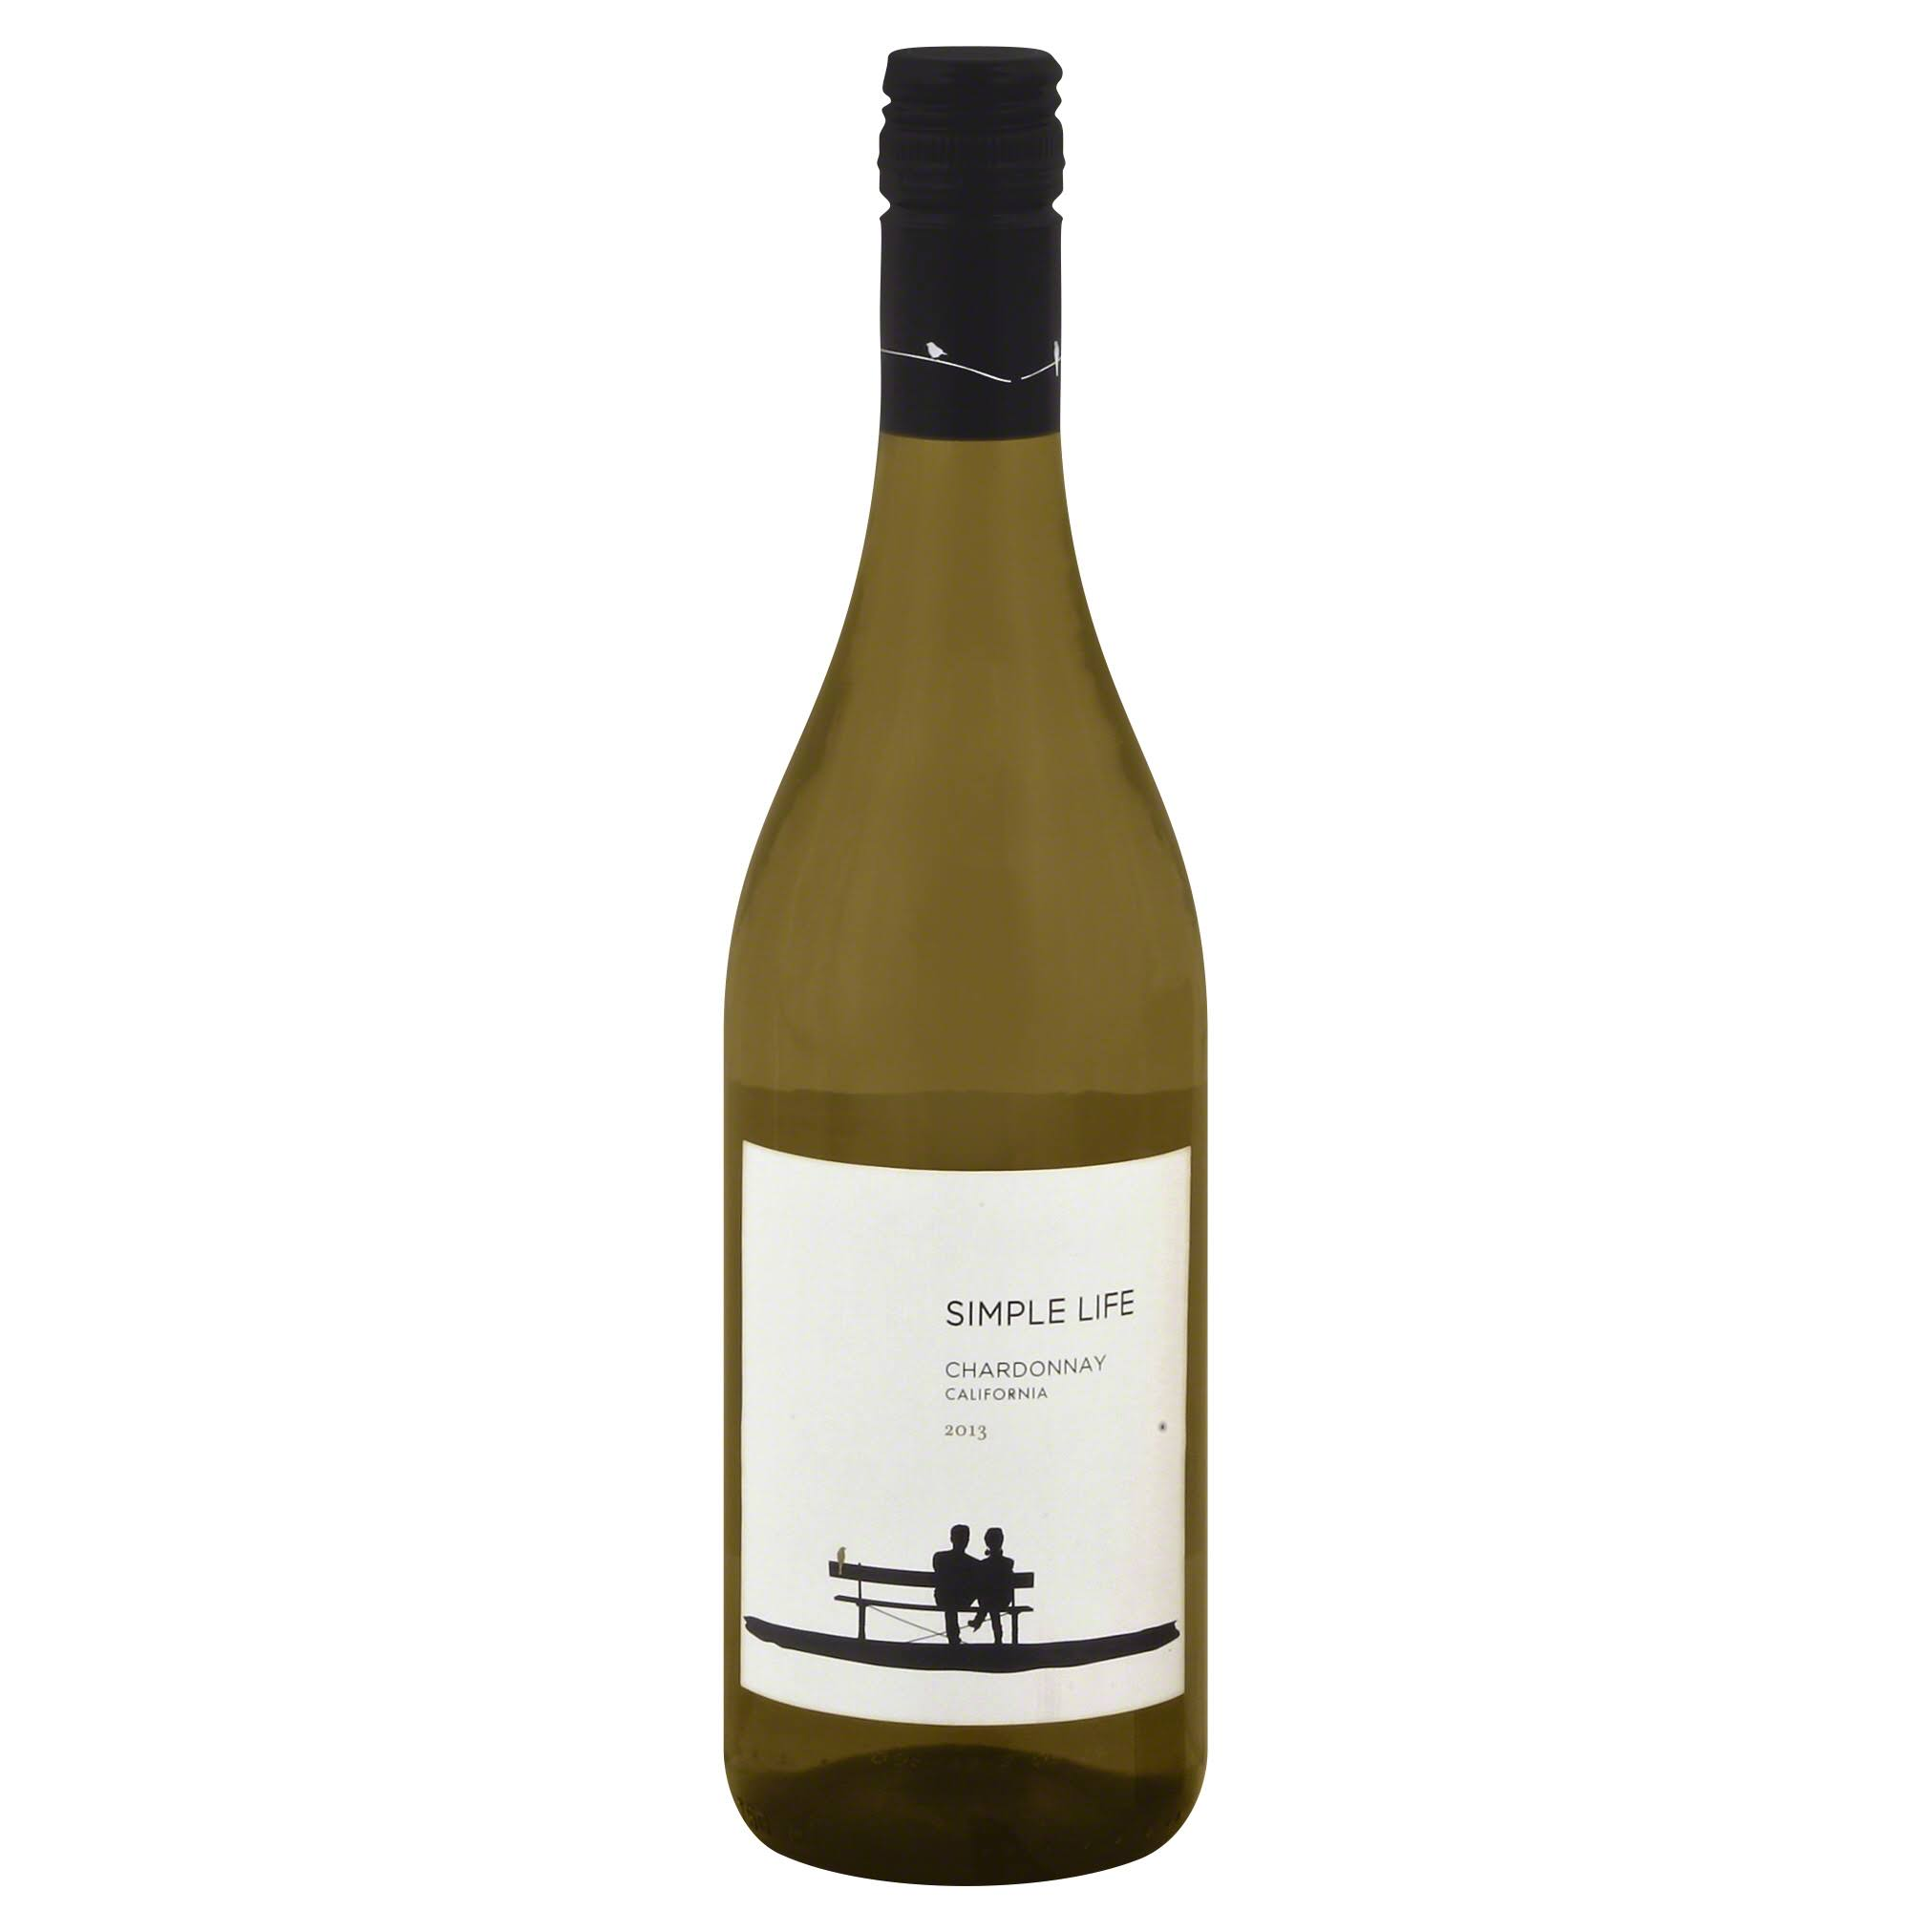 Simple Life Chardonnay - California